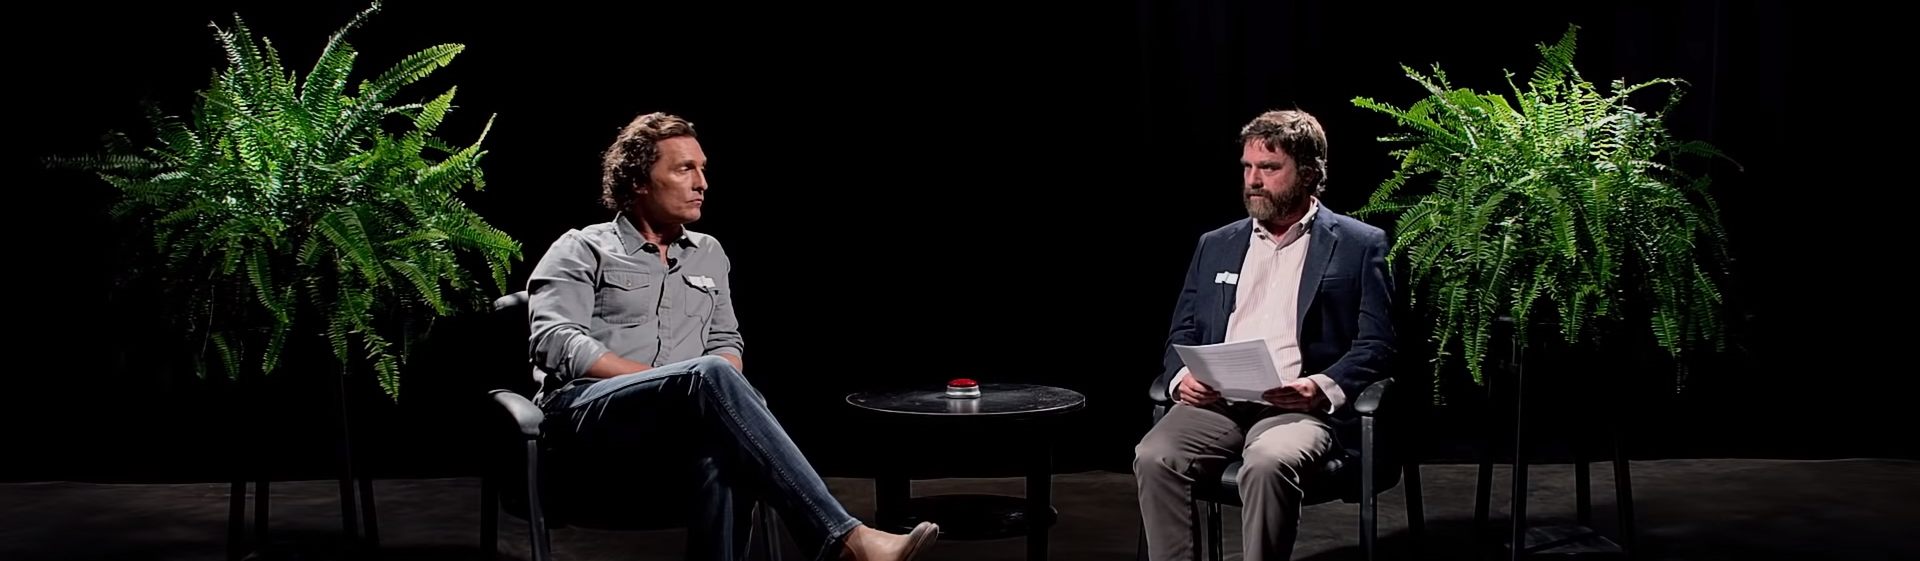 Between Two Ferns: The Movie. Image Credit: Netflix.